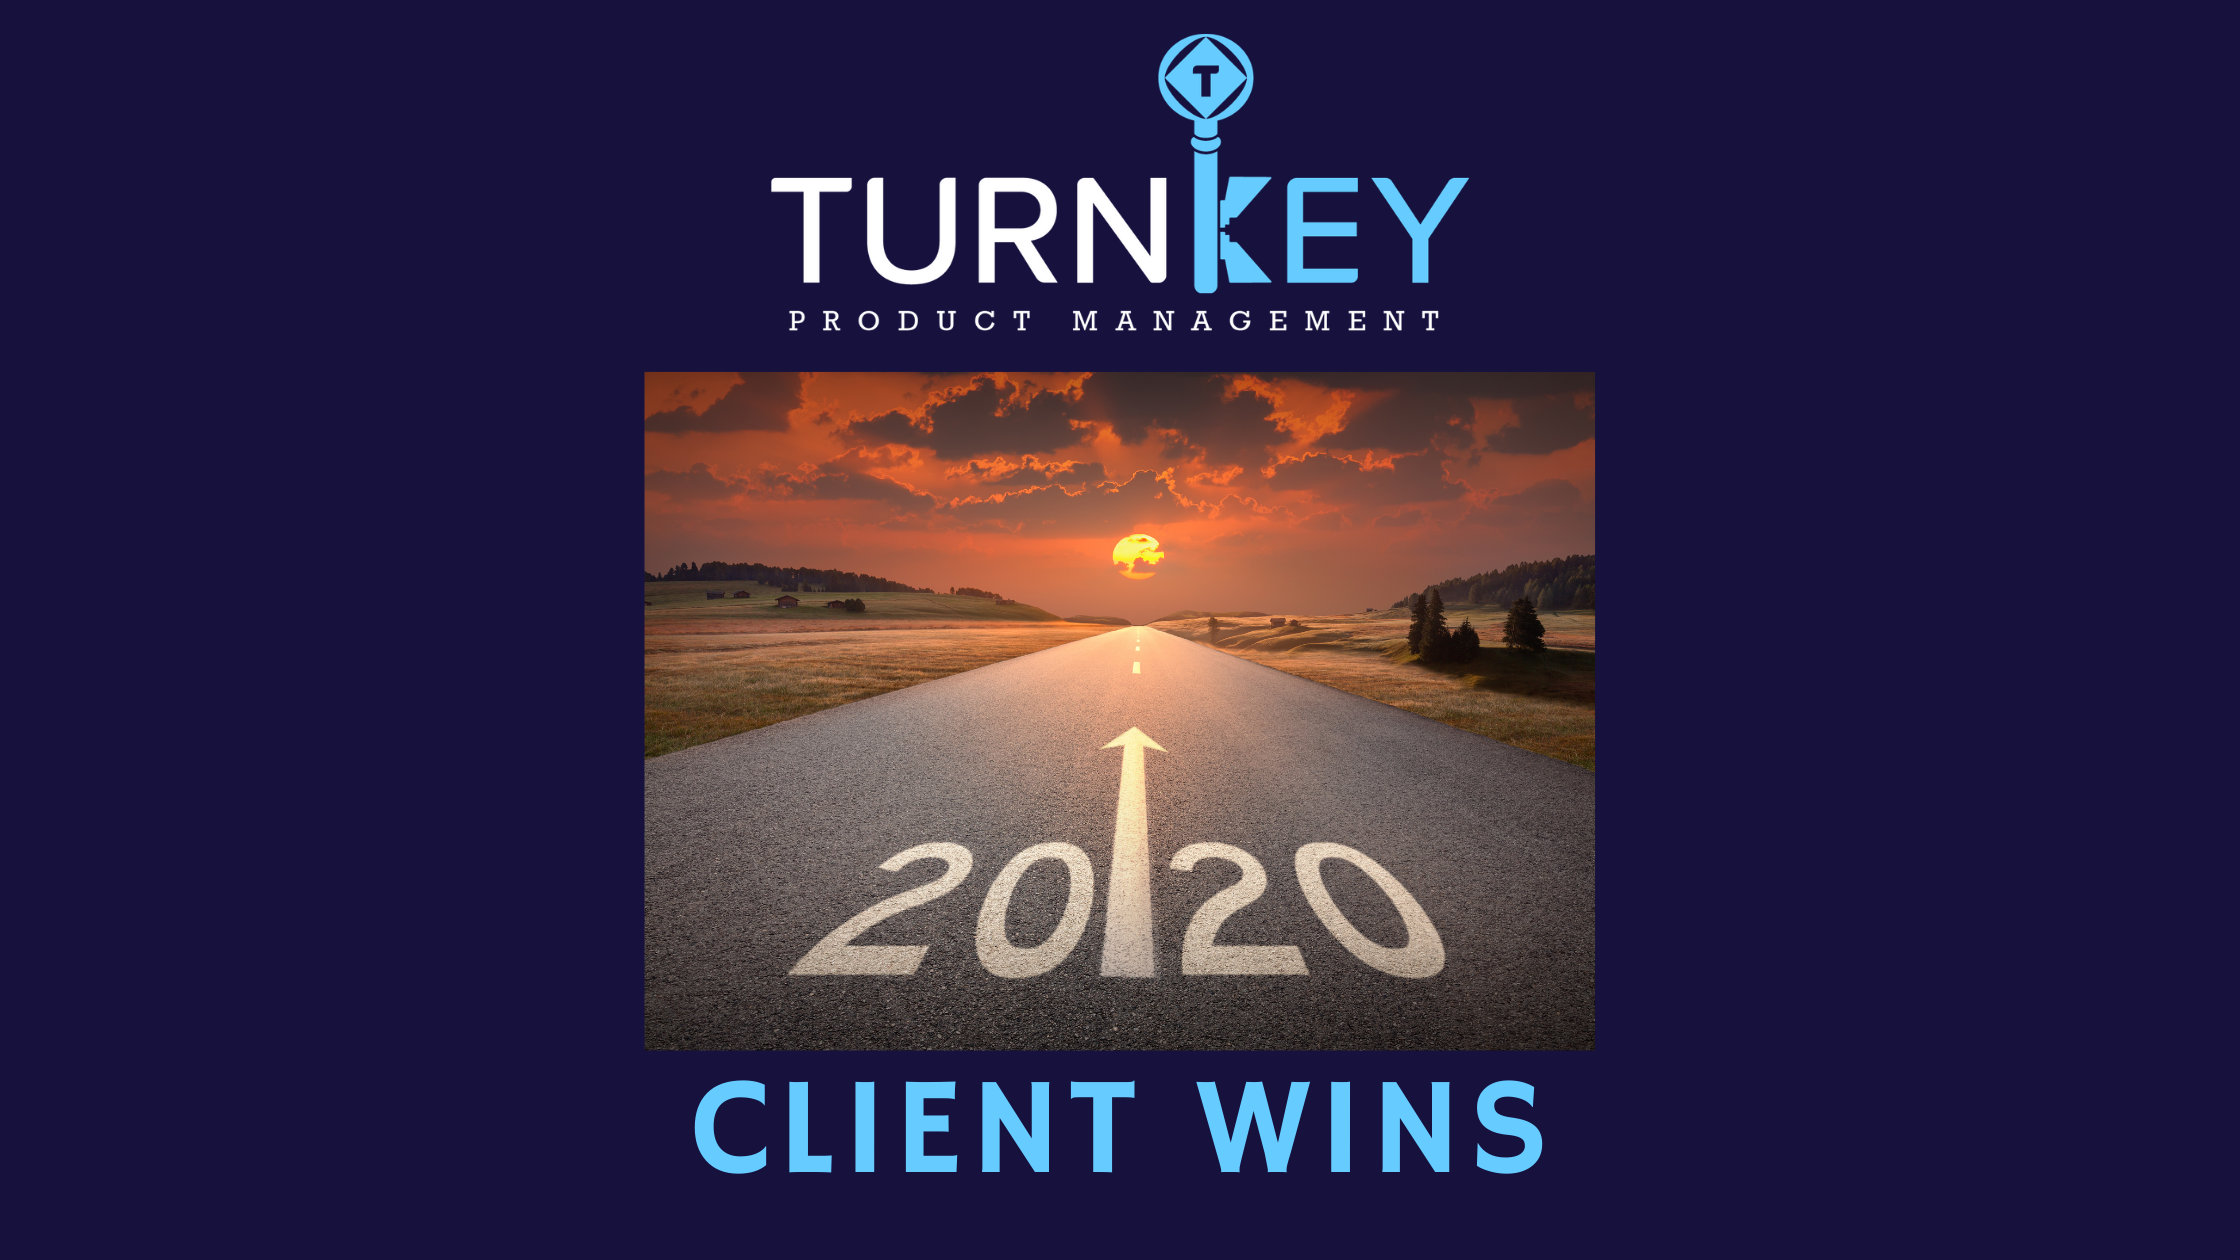 turnkey-client-wins-2020